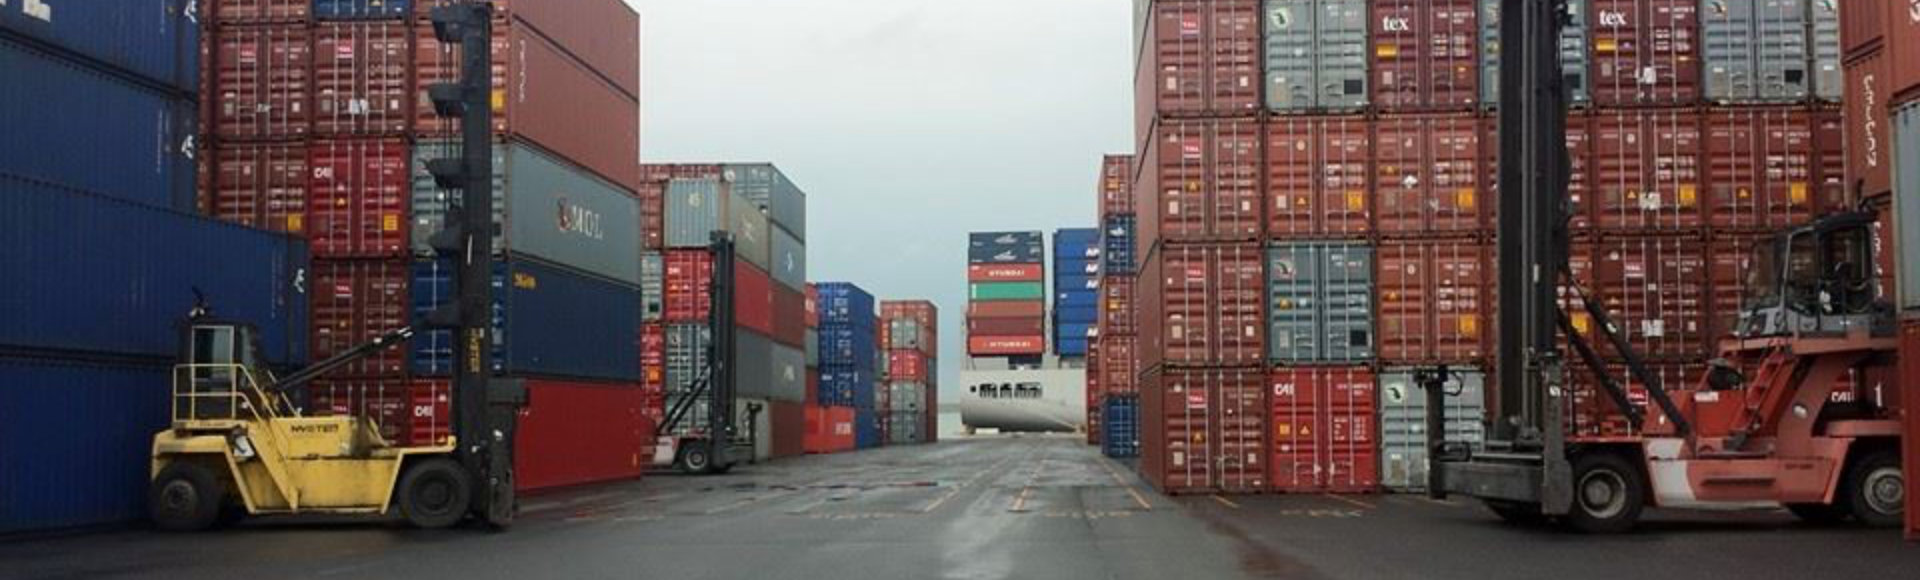 stacks of intermodal containers